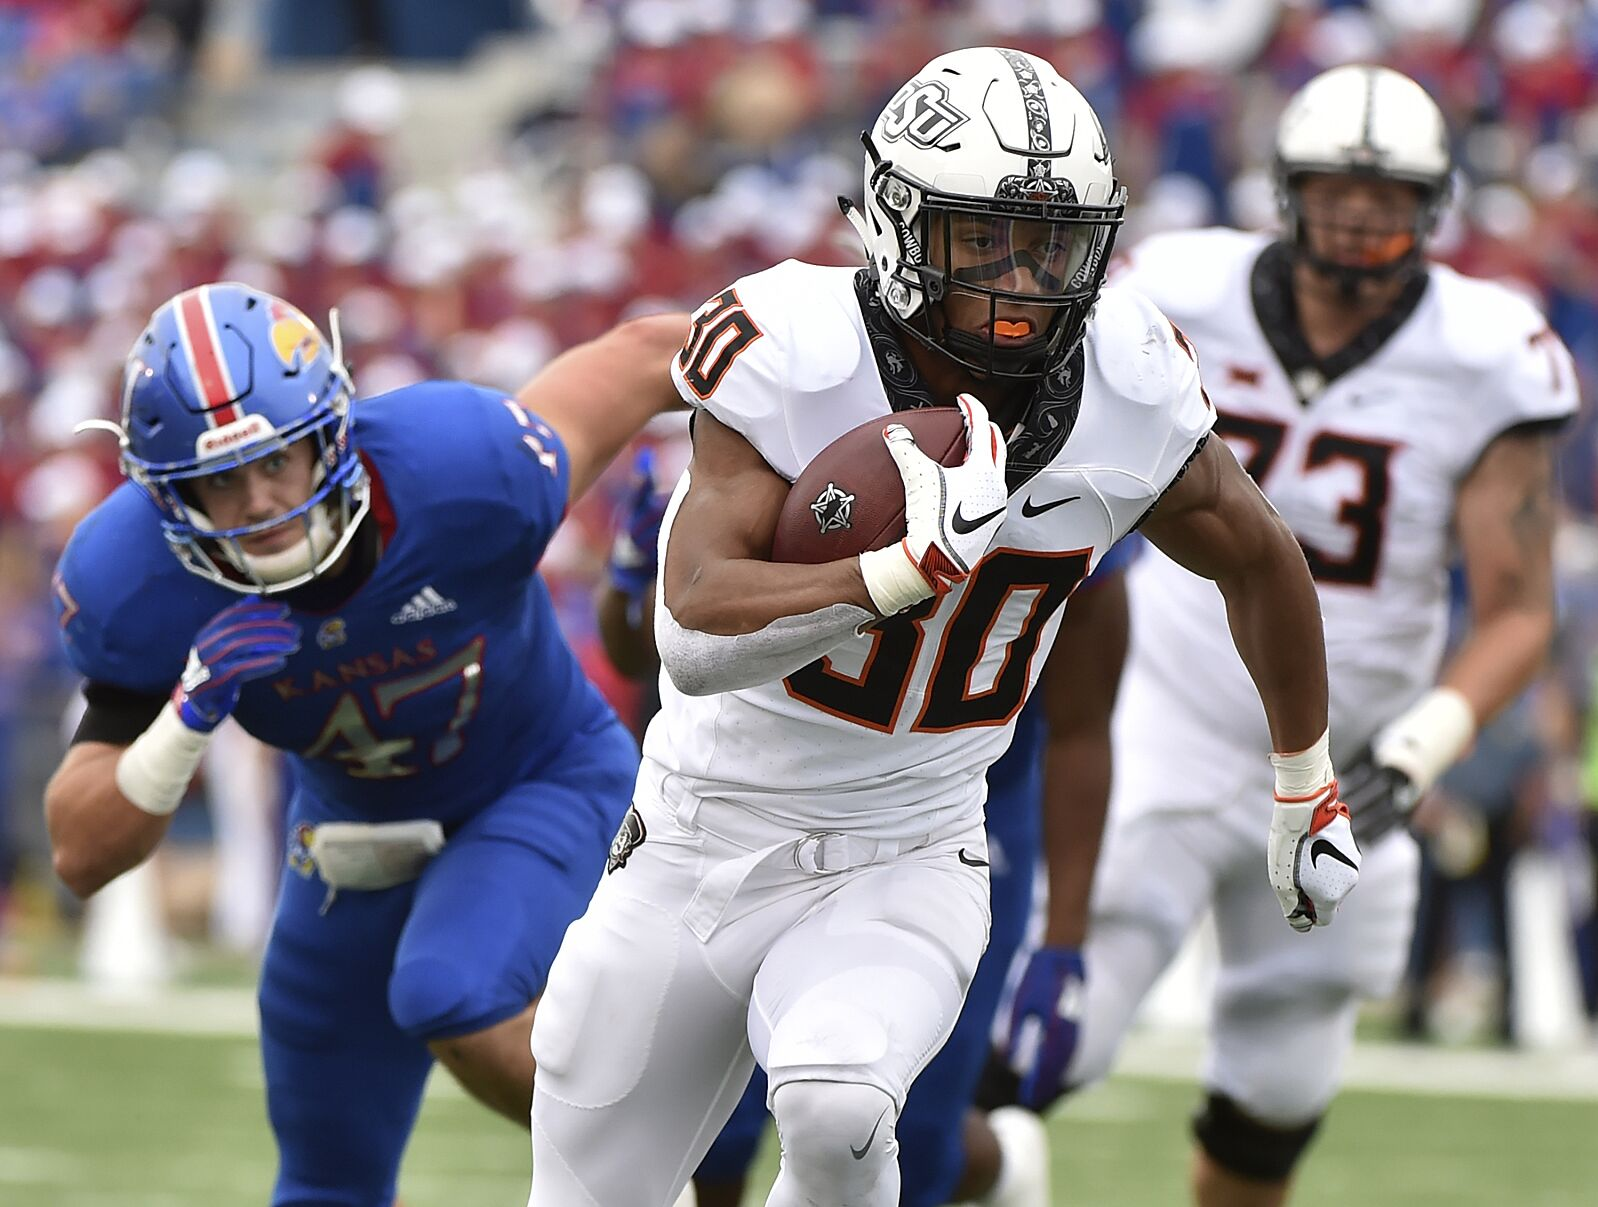 Oklahoma State Football: Pokes have talent for rebound ...